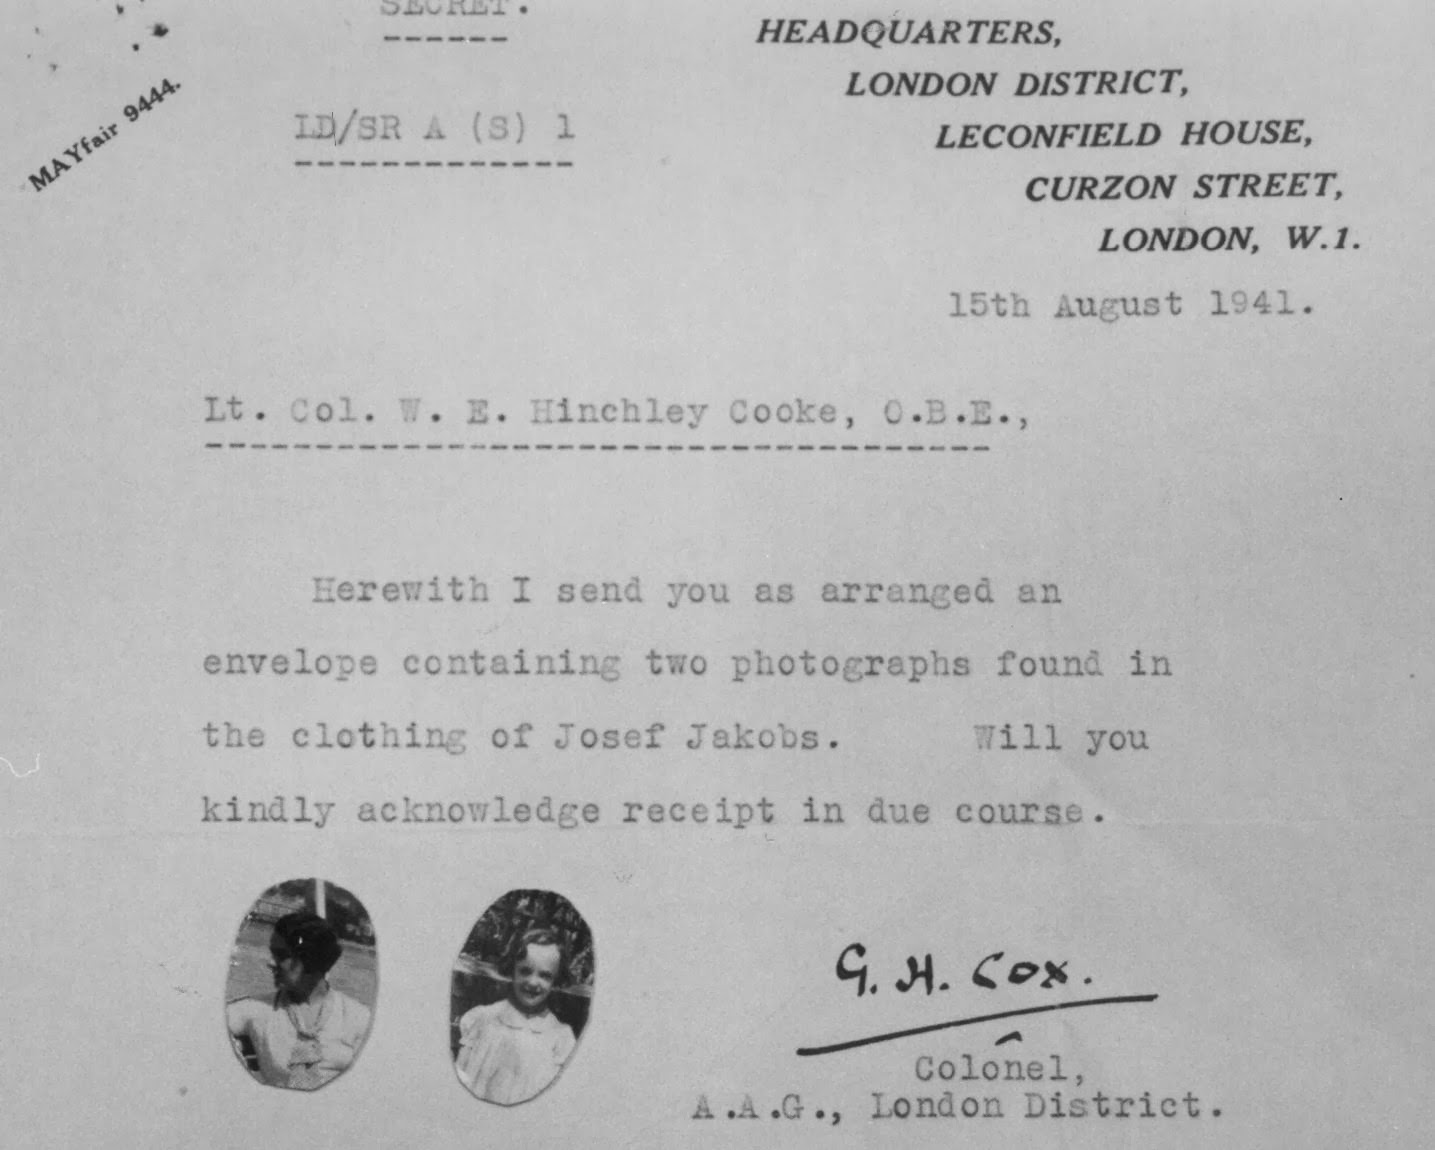 Letter acknowledging the discovery of photographs in the clothing  of Josef Jakobs.